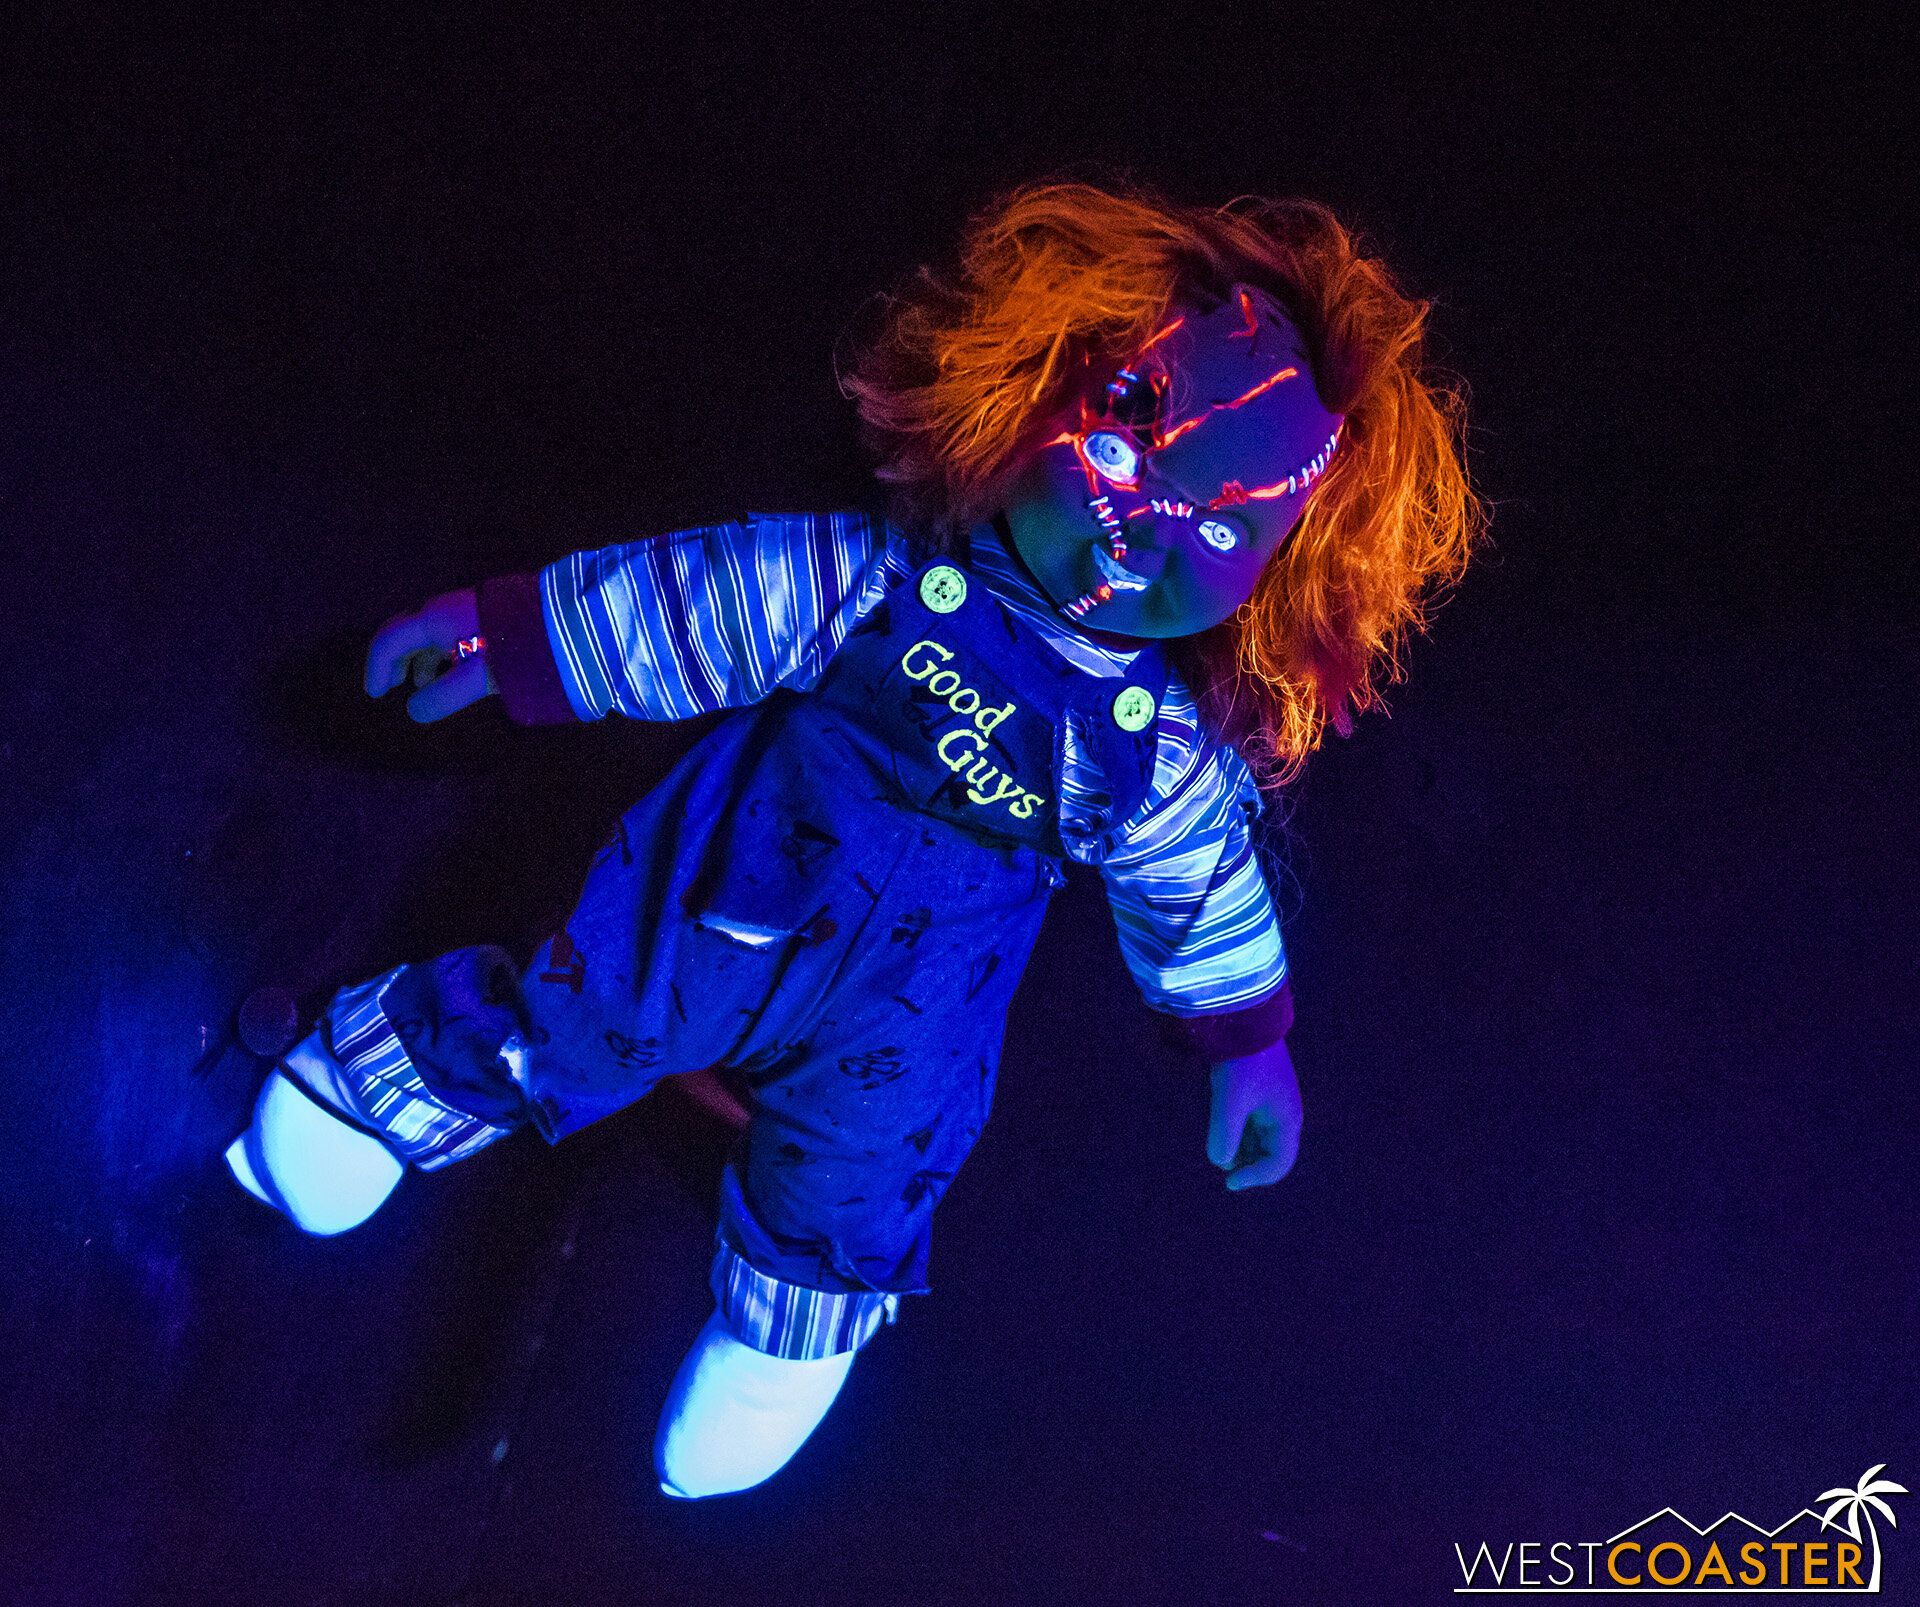 Chucky is one of several famous horror franchise icons to greet guests.